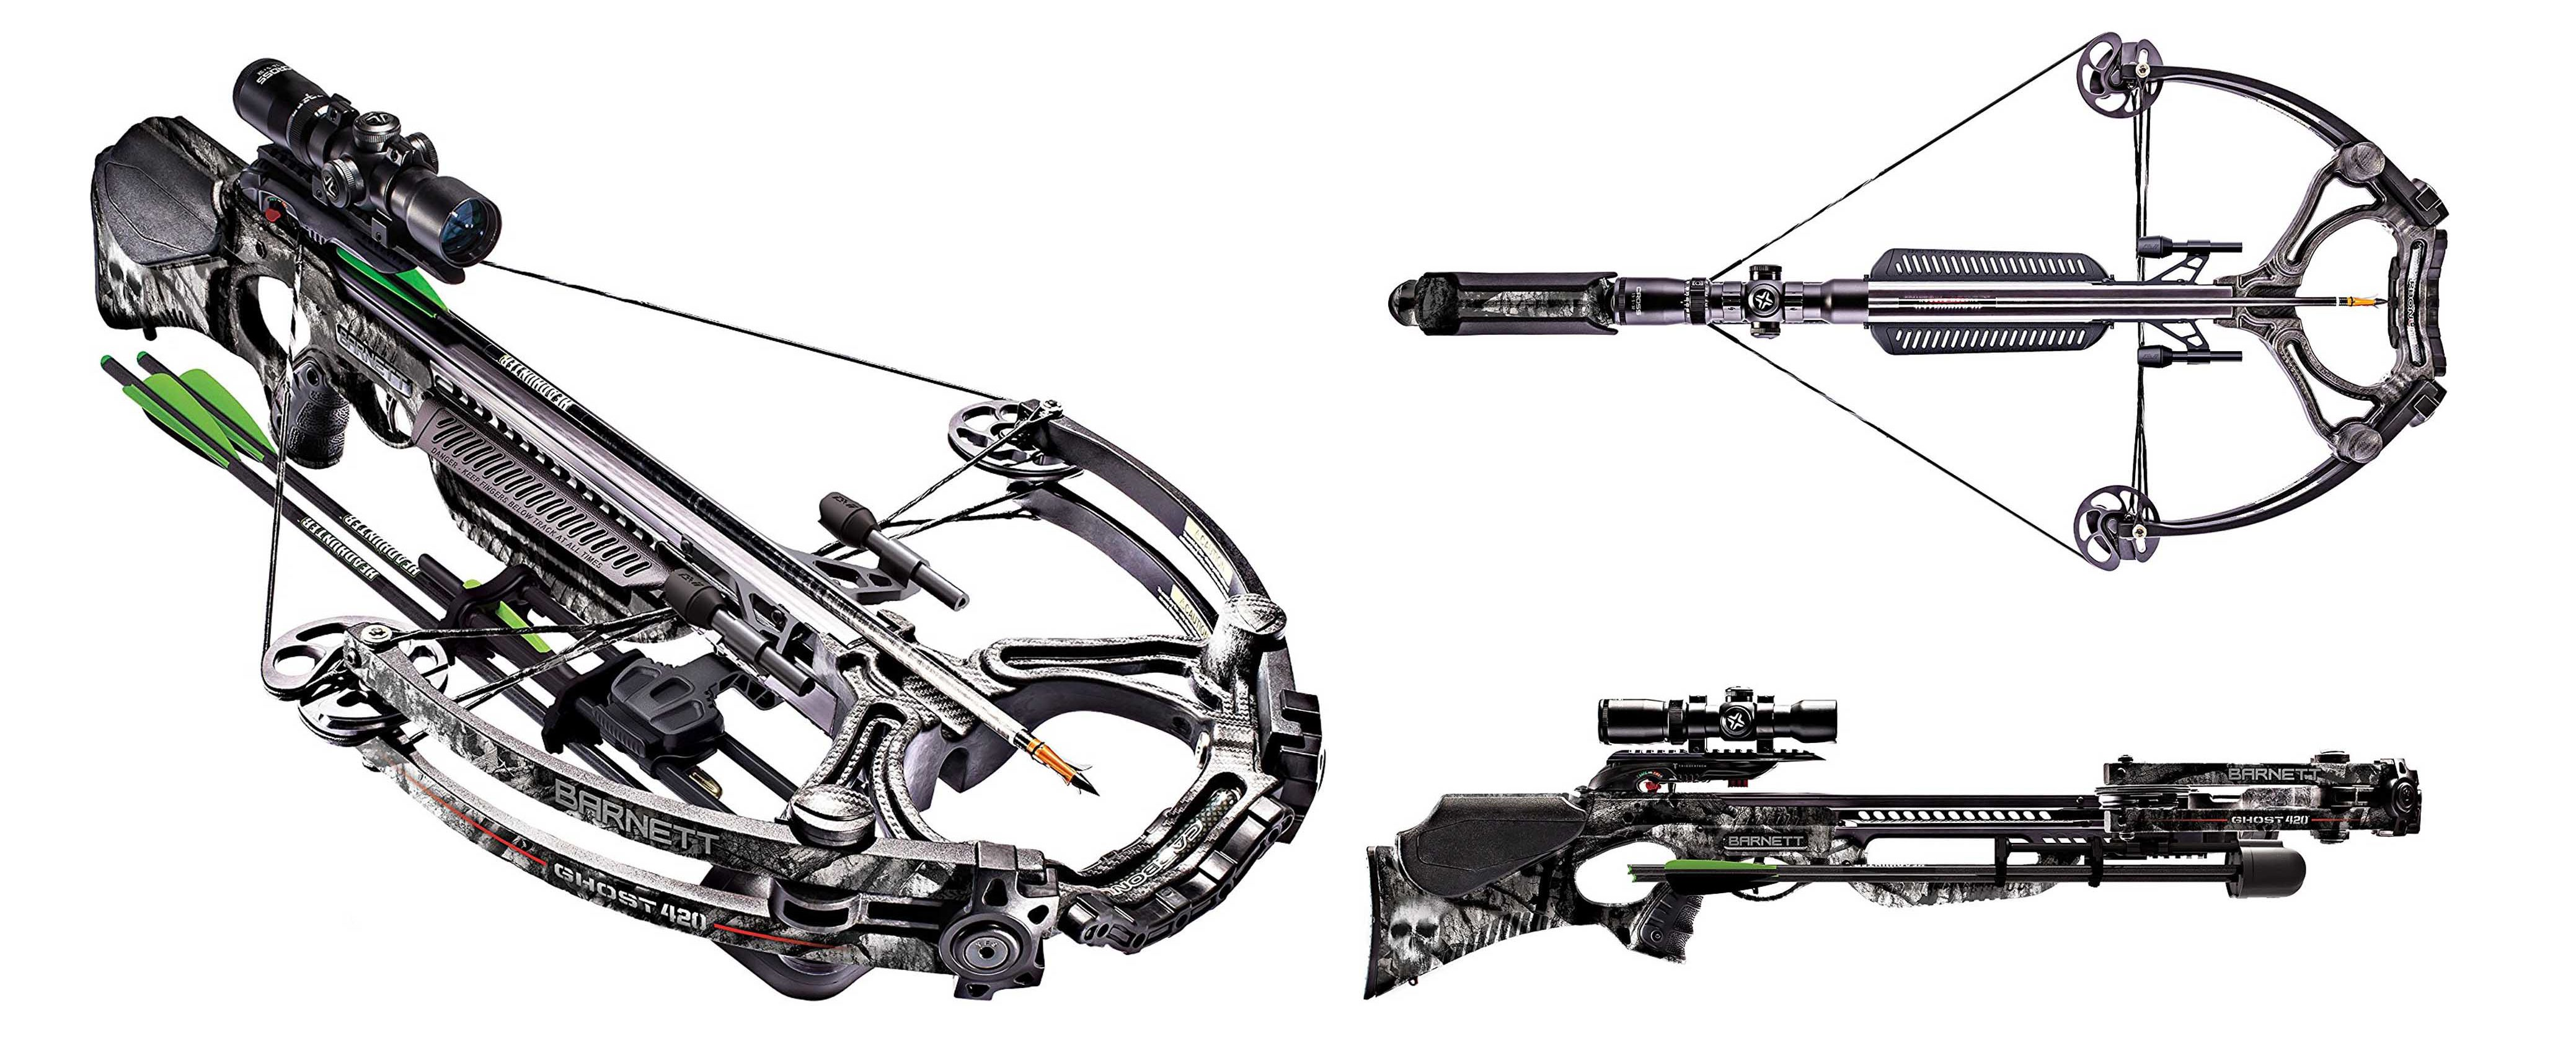 Crossbow Reviews: Top 6 Crossbows - June 2018